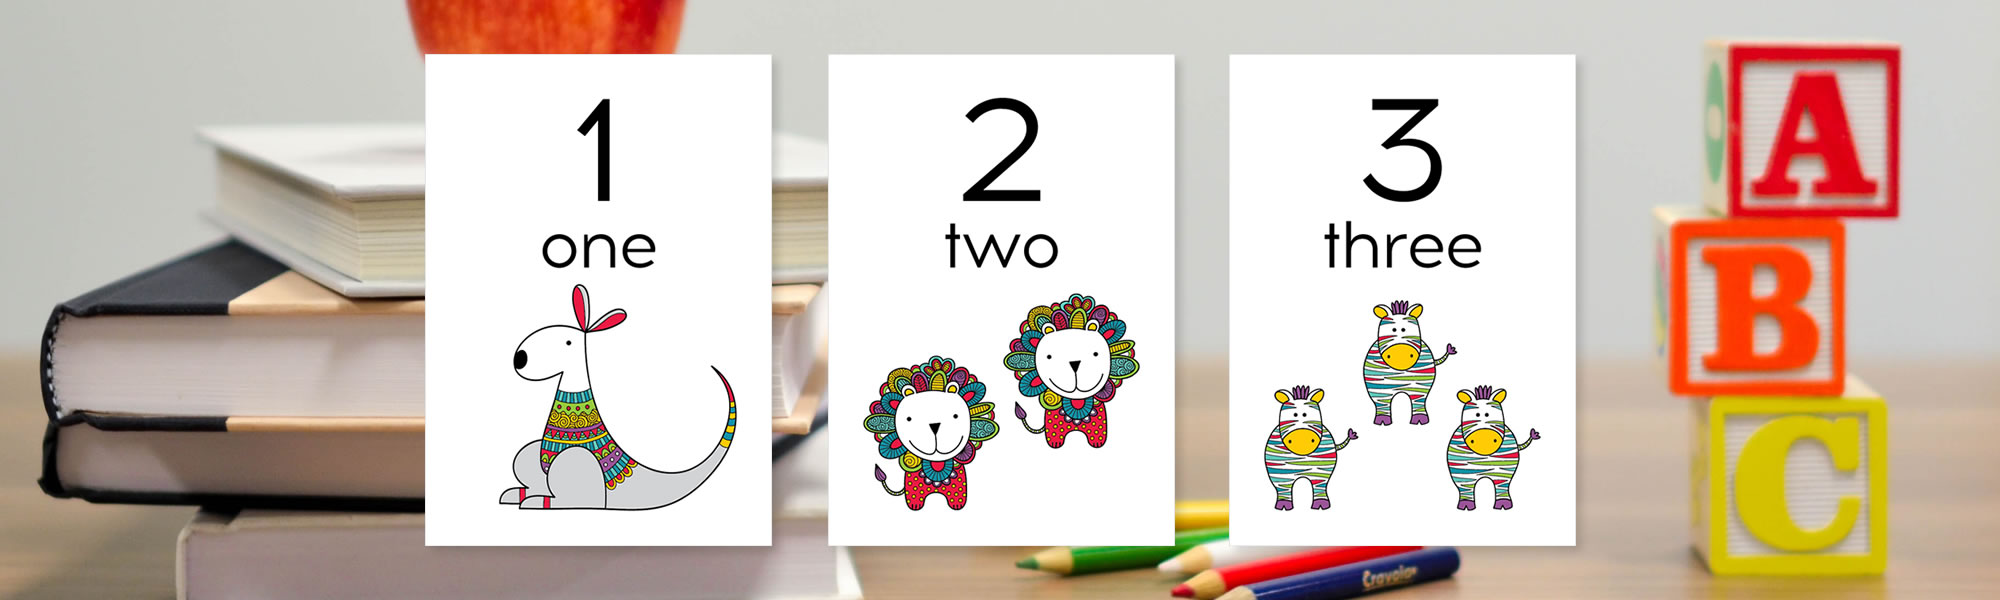 Early learning number flash cards